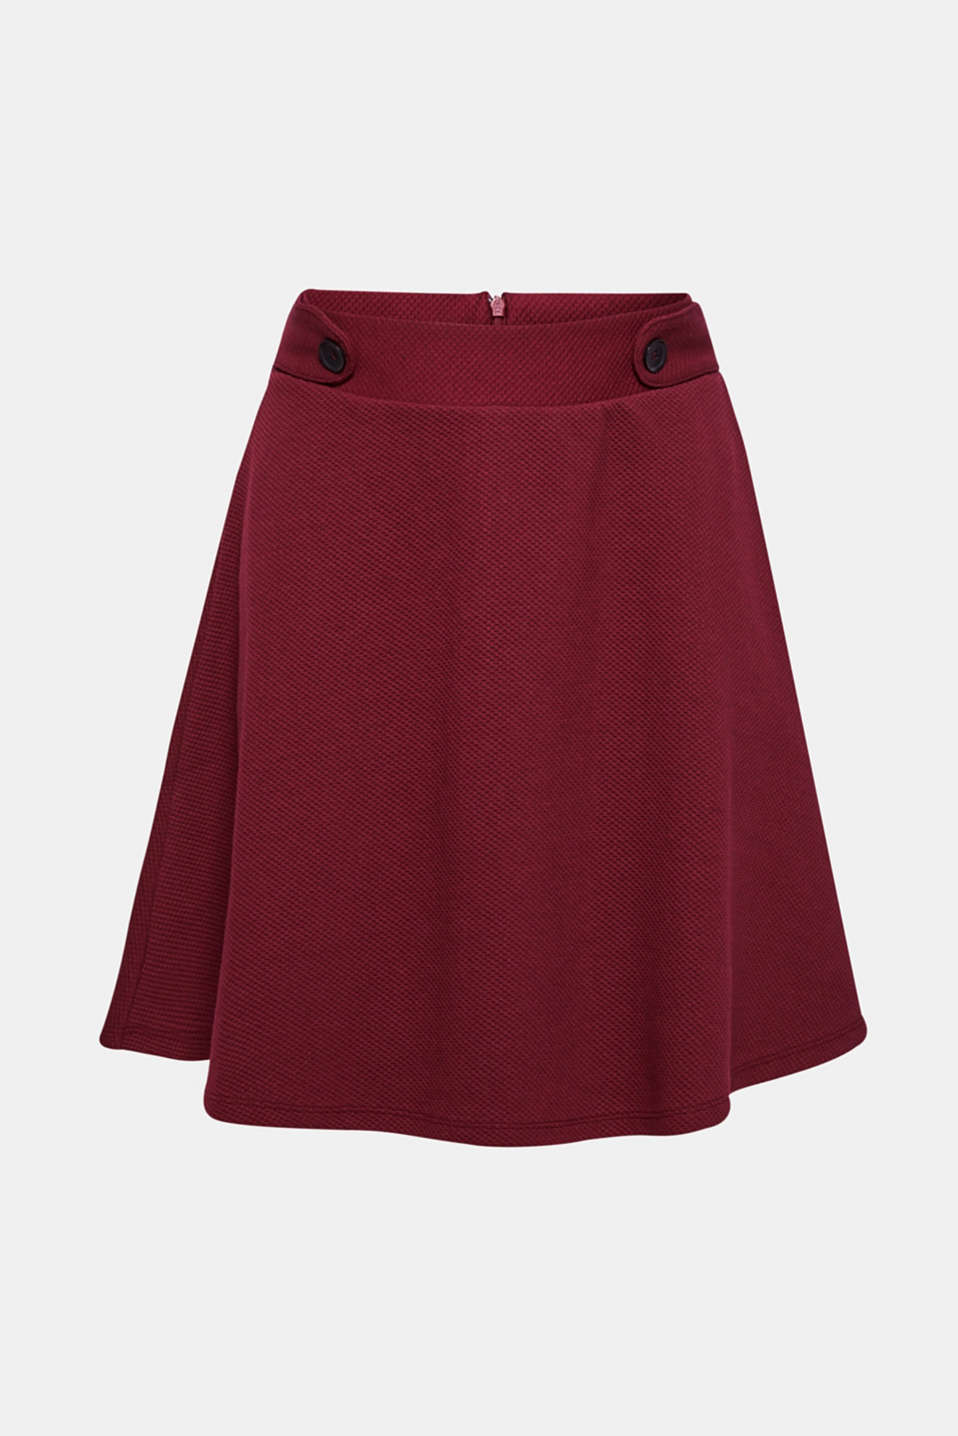 Skirts knitted, GARNET RED, detail image number 6